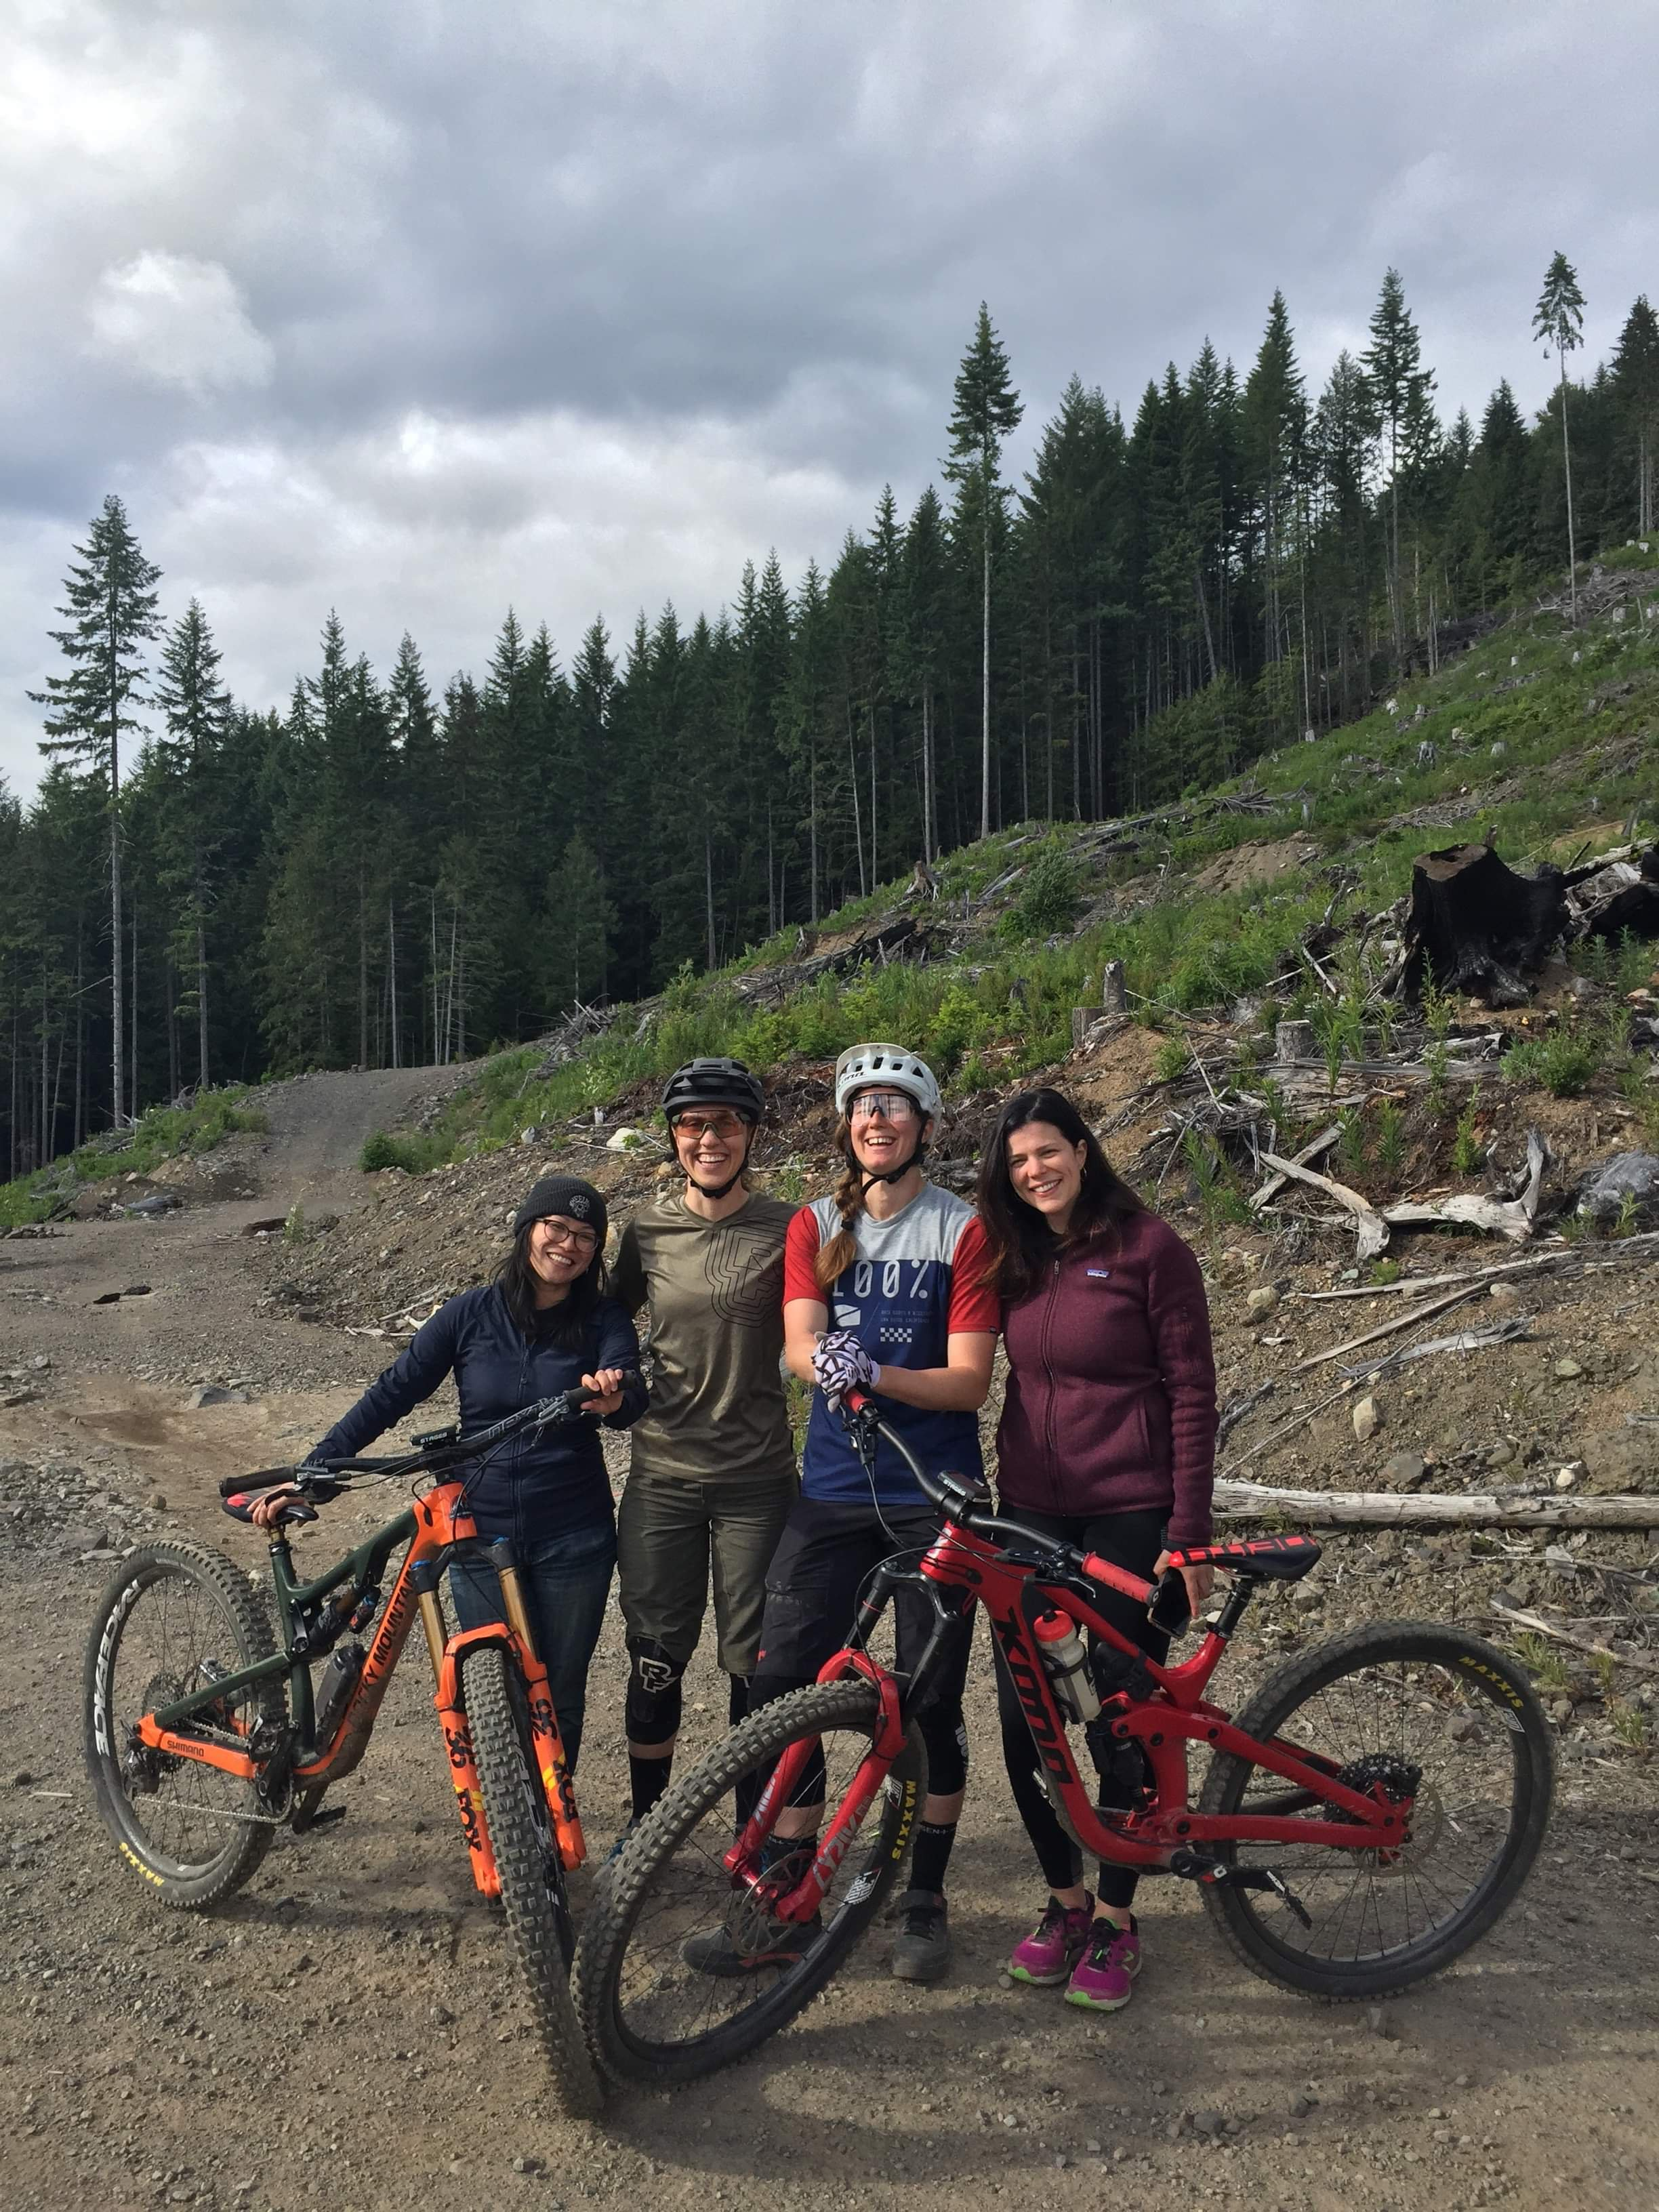 902_On Falling_Meadow of the Grizzlies Trail Pic_left to right Producer Joella Cabalu, Subject Andreane Lanthier Nadeau, Subject Miranda Miller, Director Josephine Anderson.jpeg